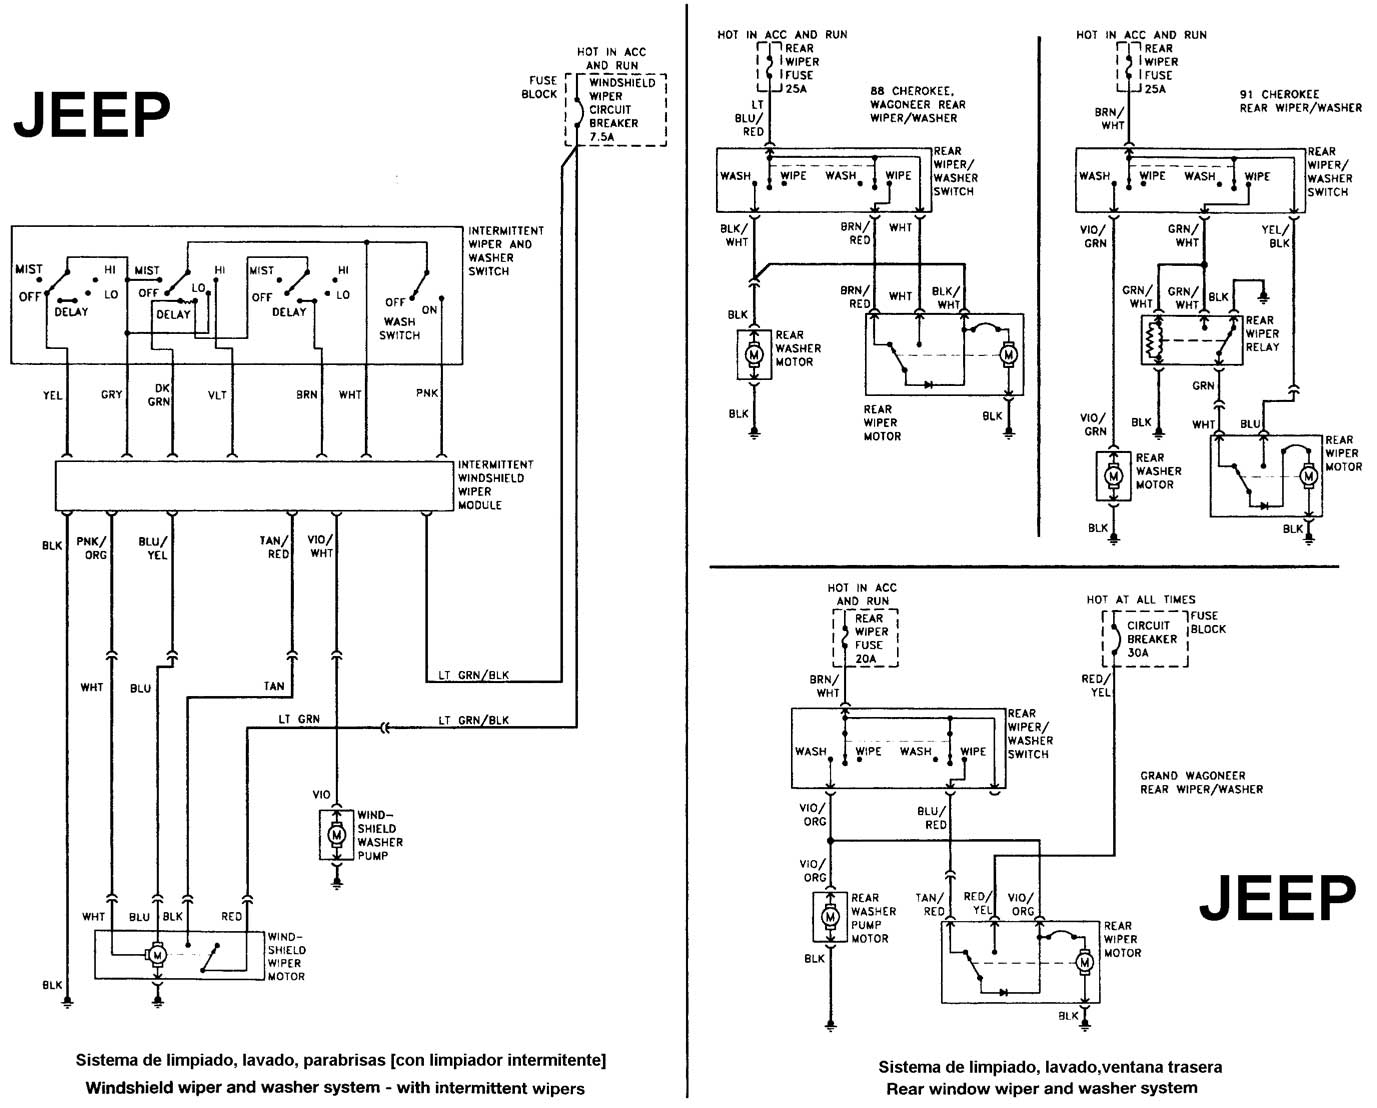 wiring diagram for 1986 jeep comanche wiring diagram for